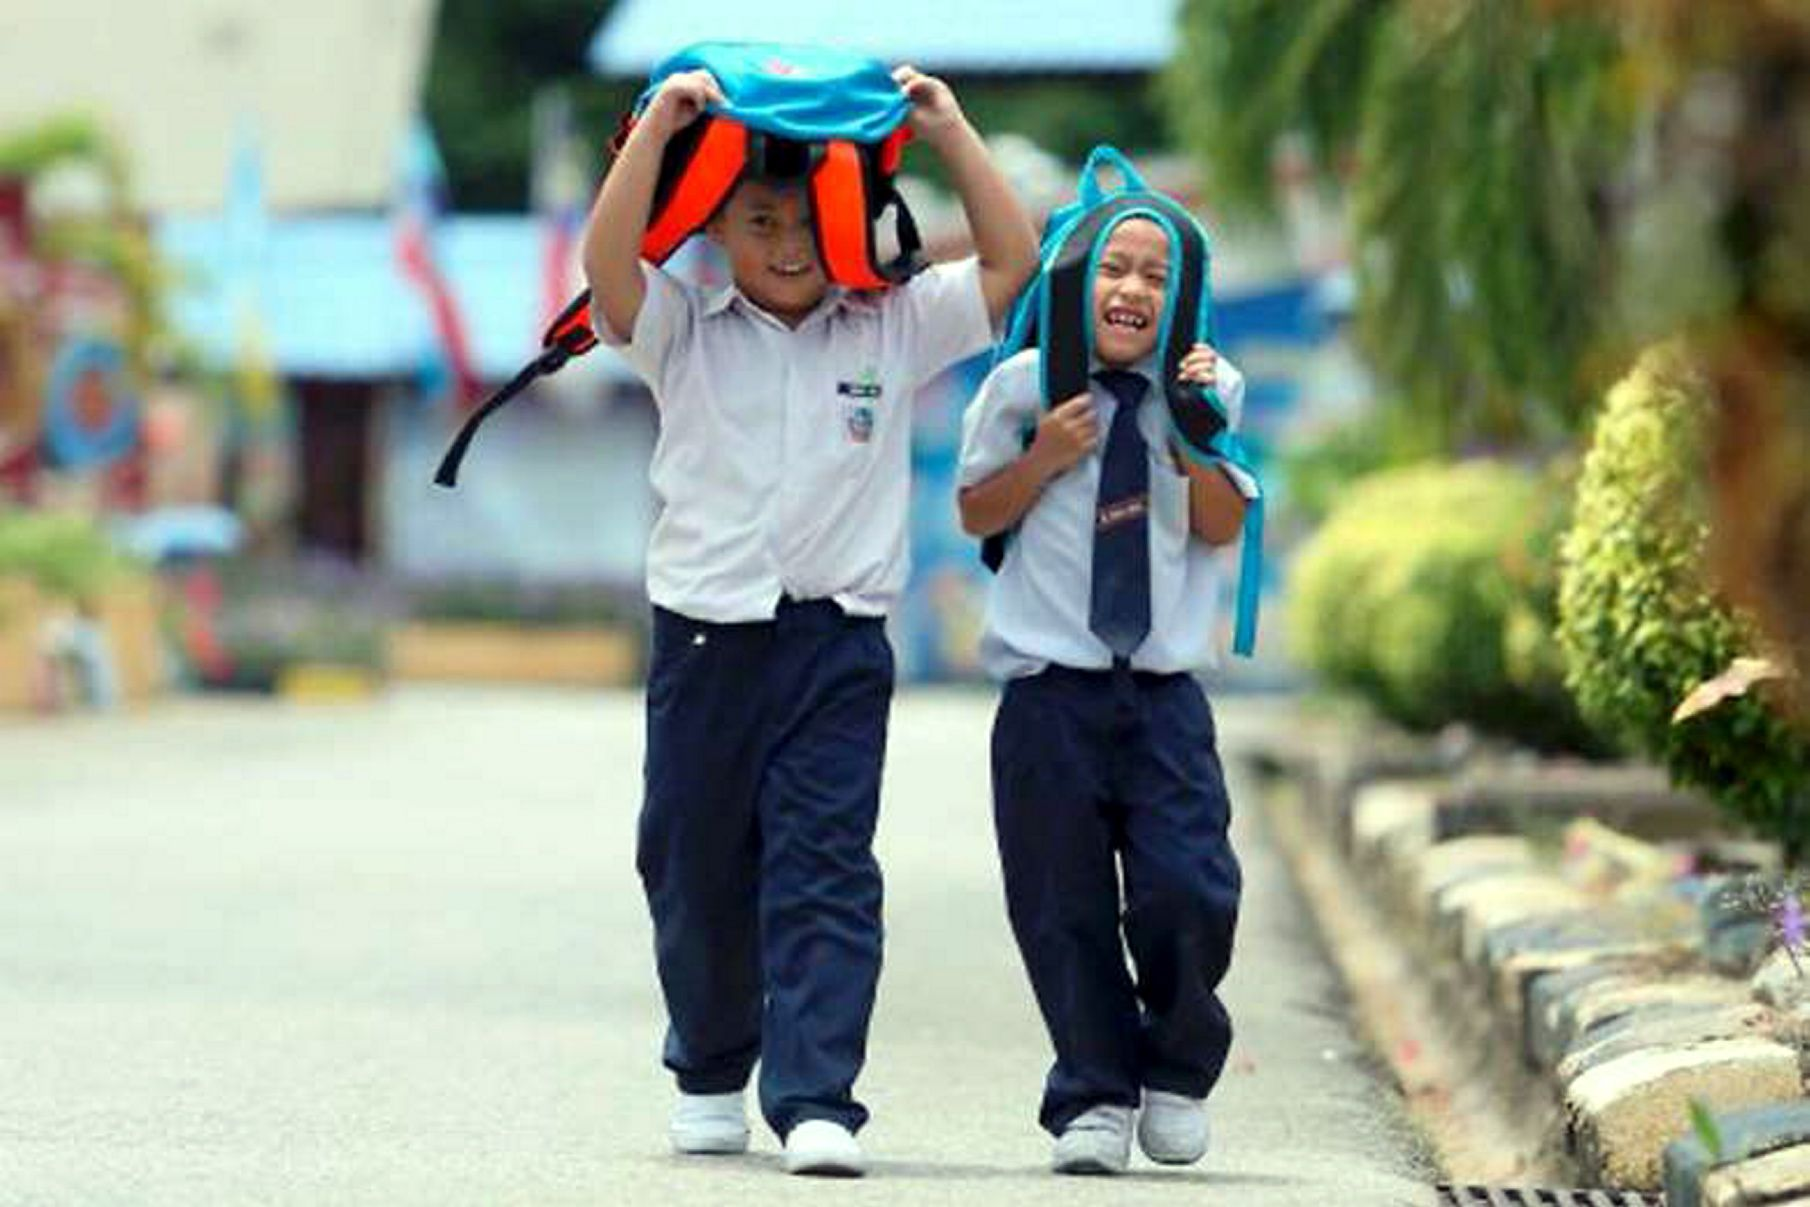 Heatwave shuts more than 250 Malaysian schools